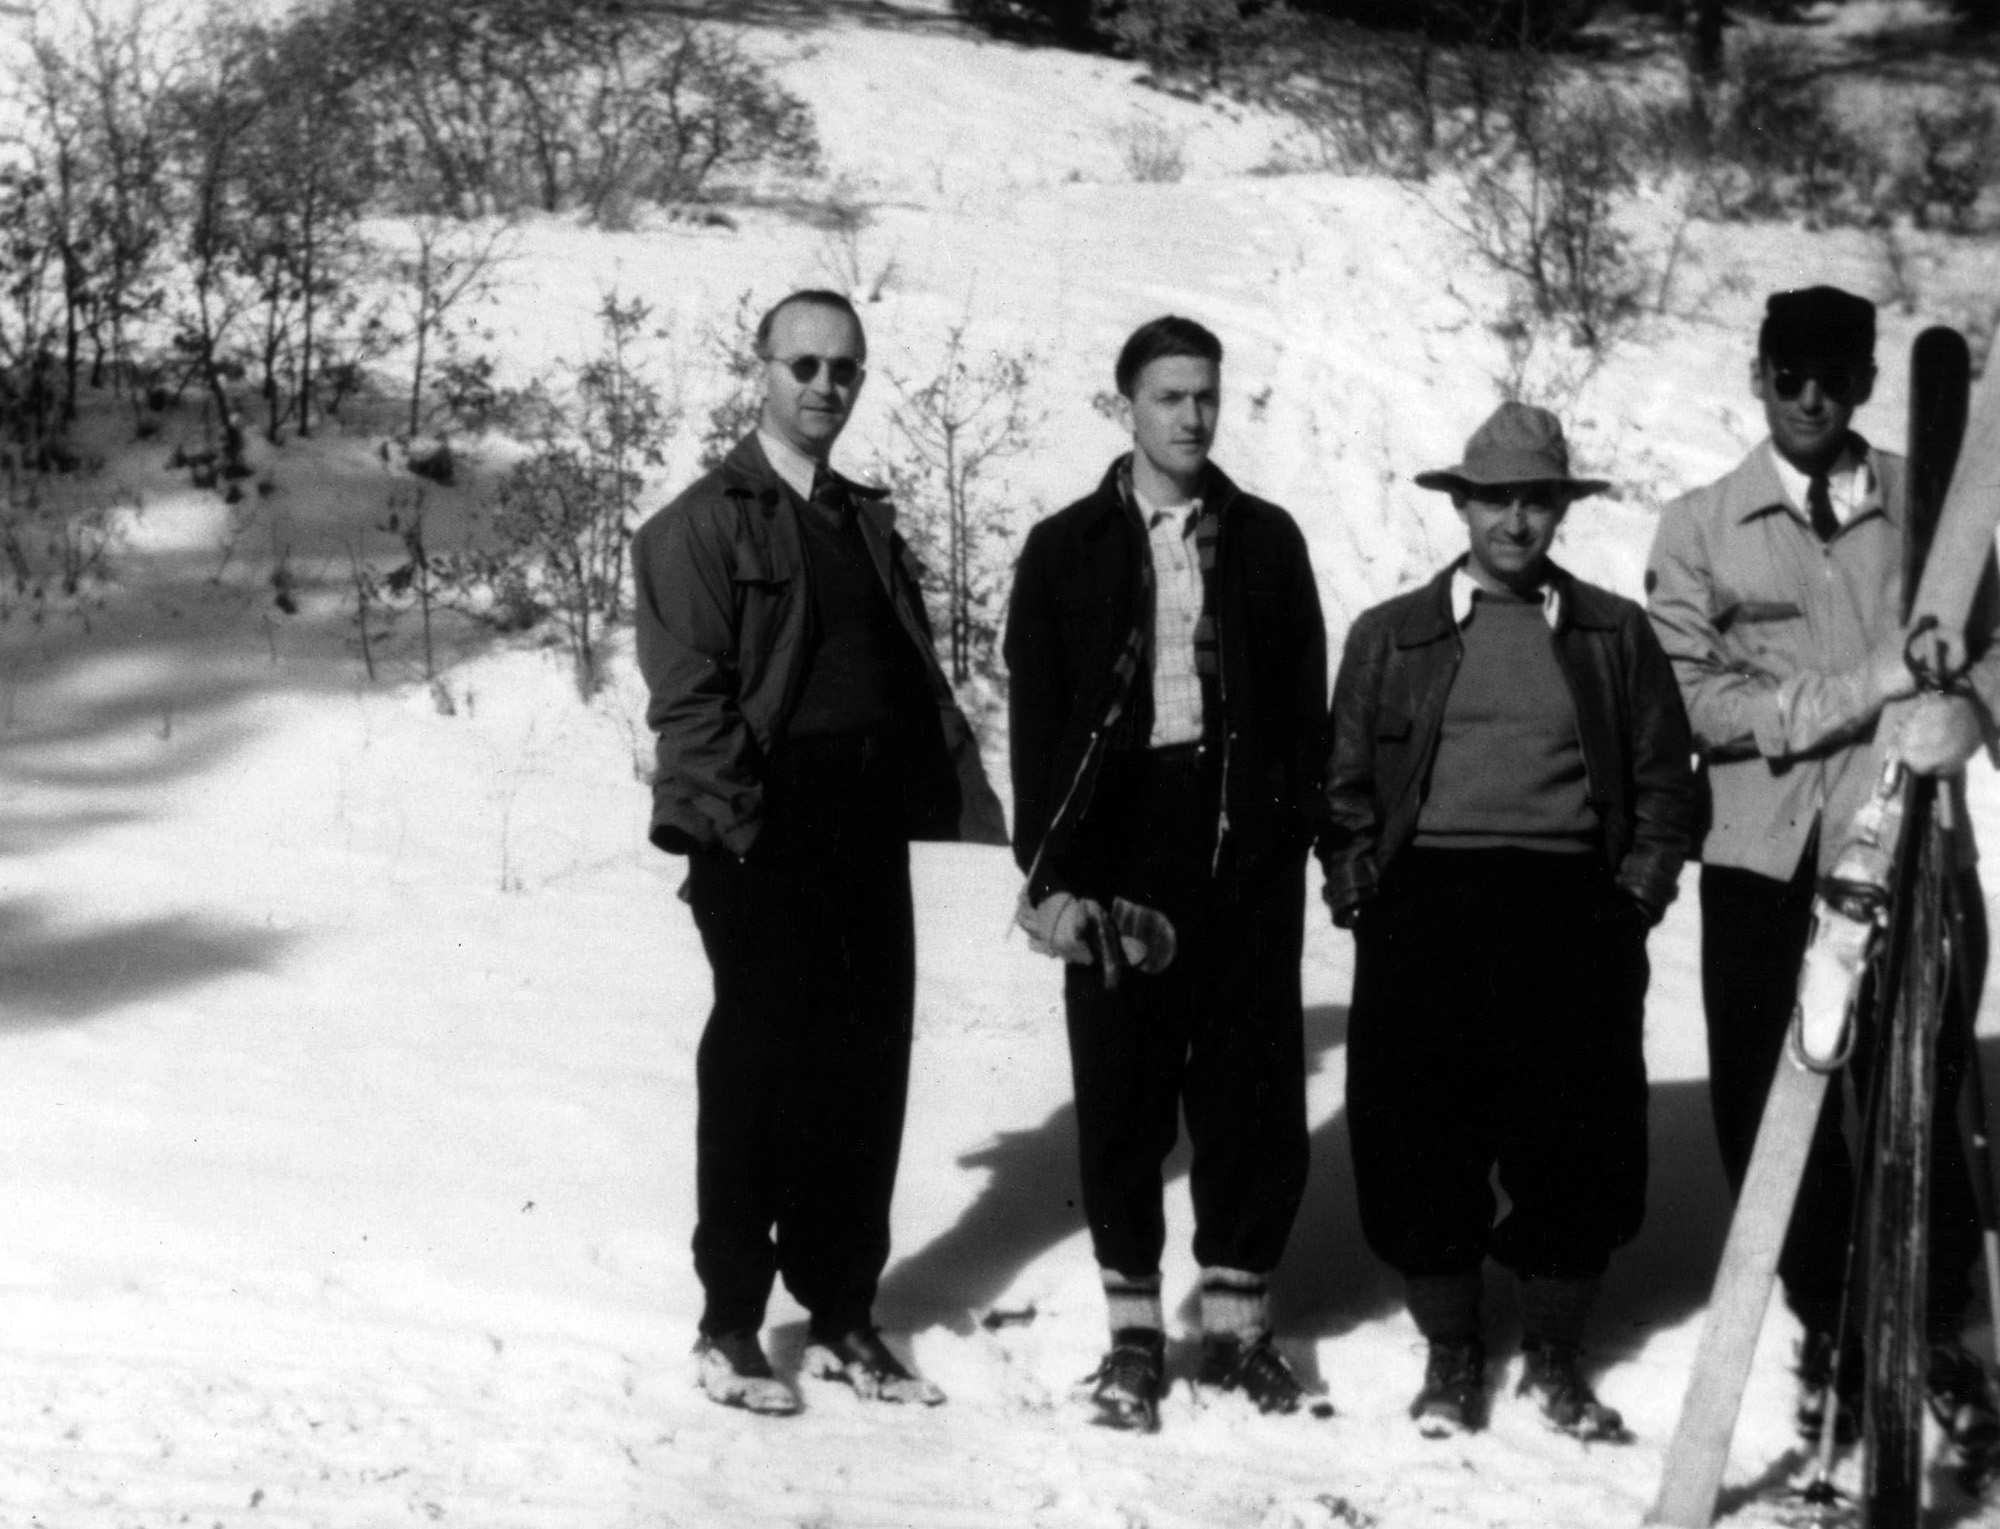 Enrico Fermi and colleagues skiiing. Photo courtesy of Los Alamos National Laboratory.